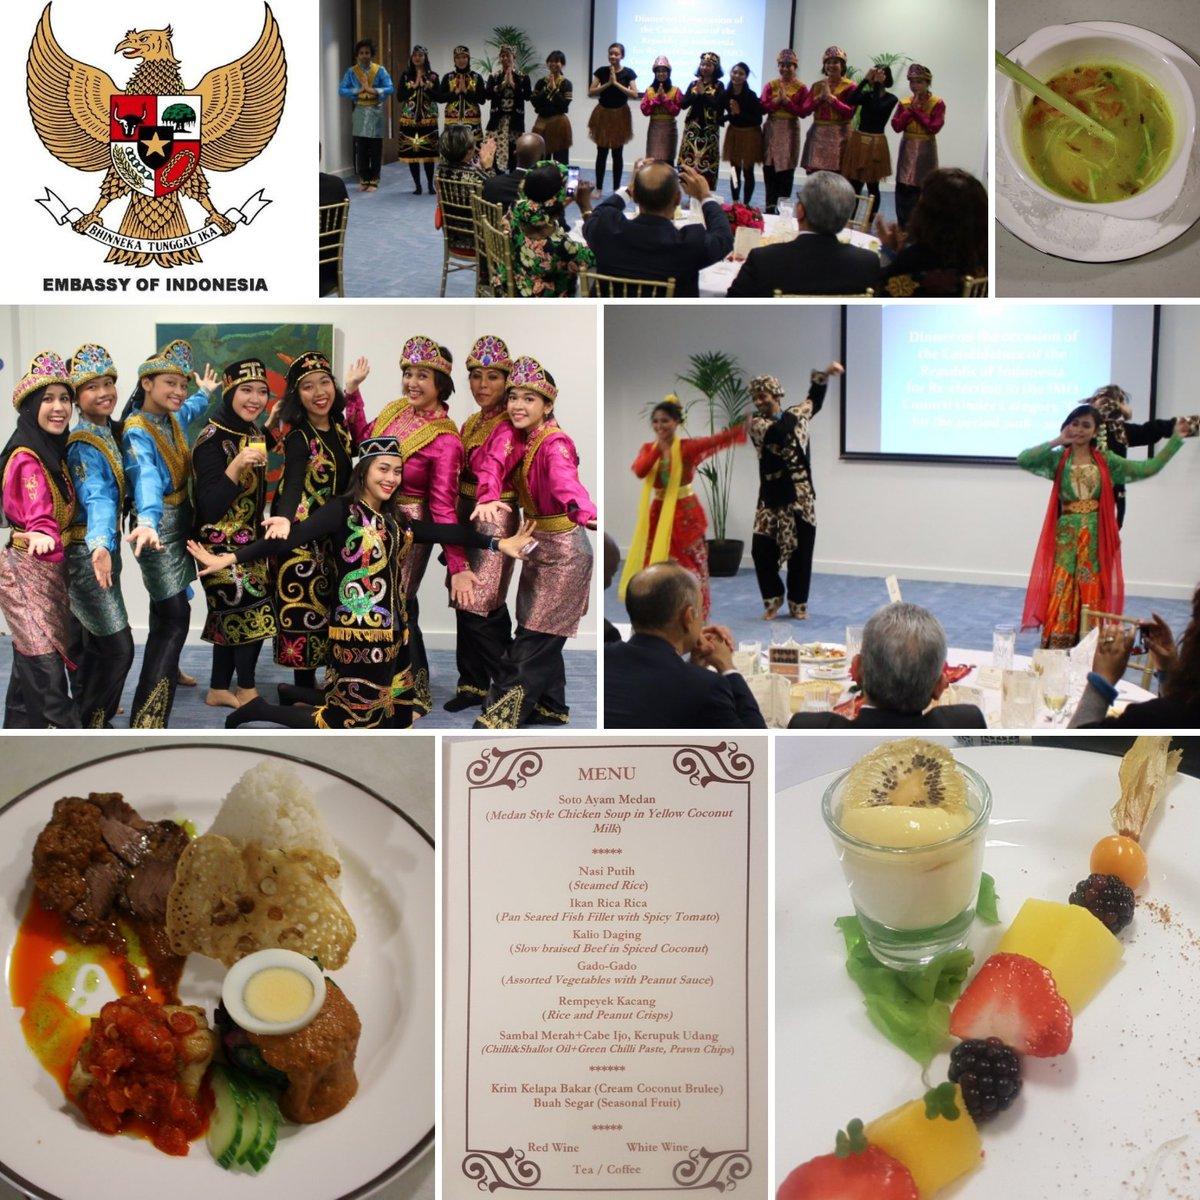 Dr Rizal Sukma On Twitter Showcasing A Medley Of Indonesian Ayam Rica Merah Dances Presenting Culinary Taste Different Islands In Indonesia To My Friends From The